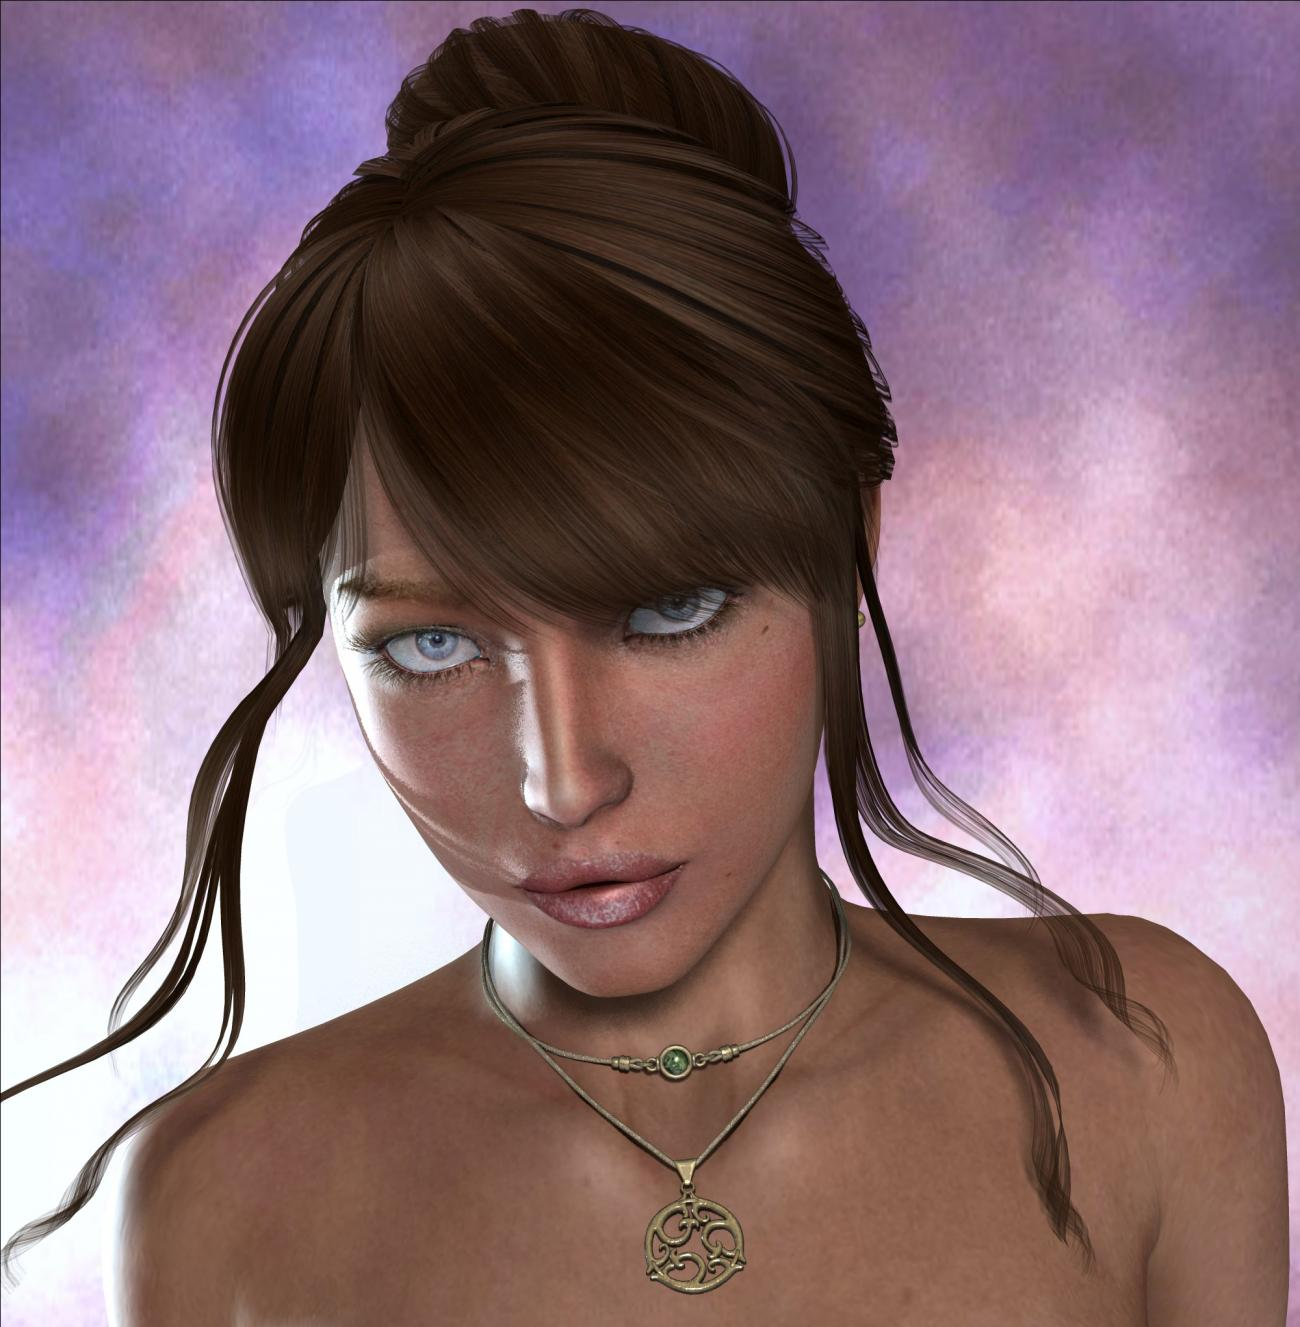 *~*The Stare*~* by Melisand